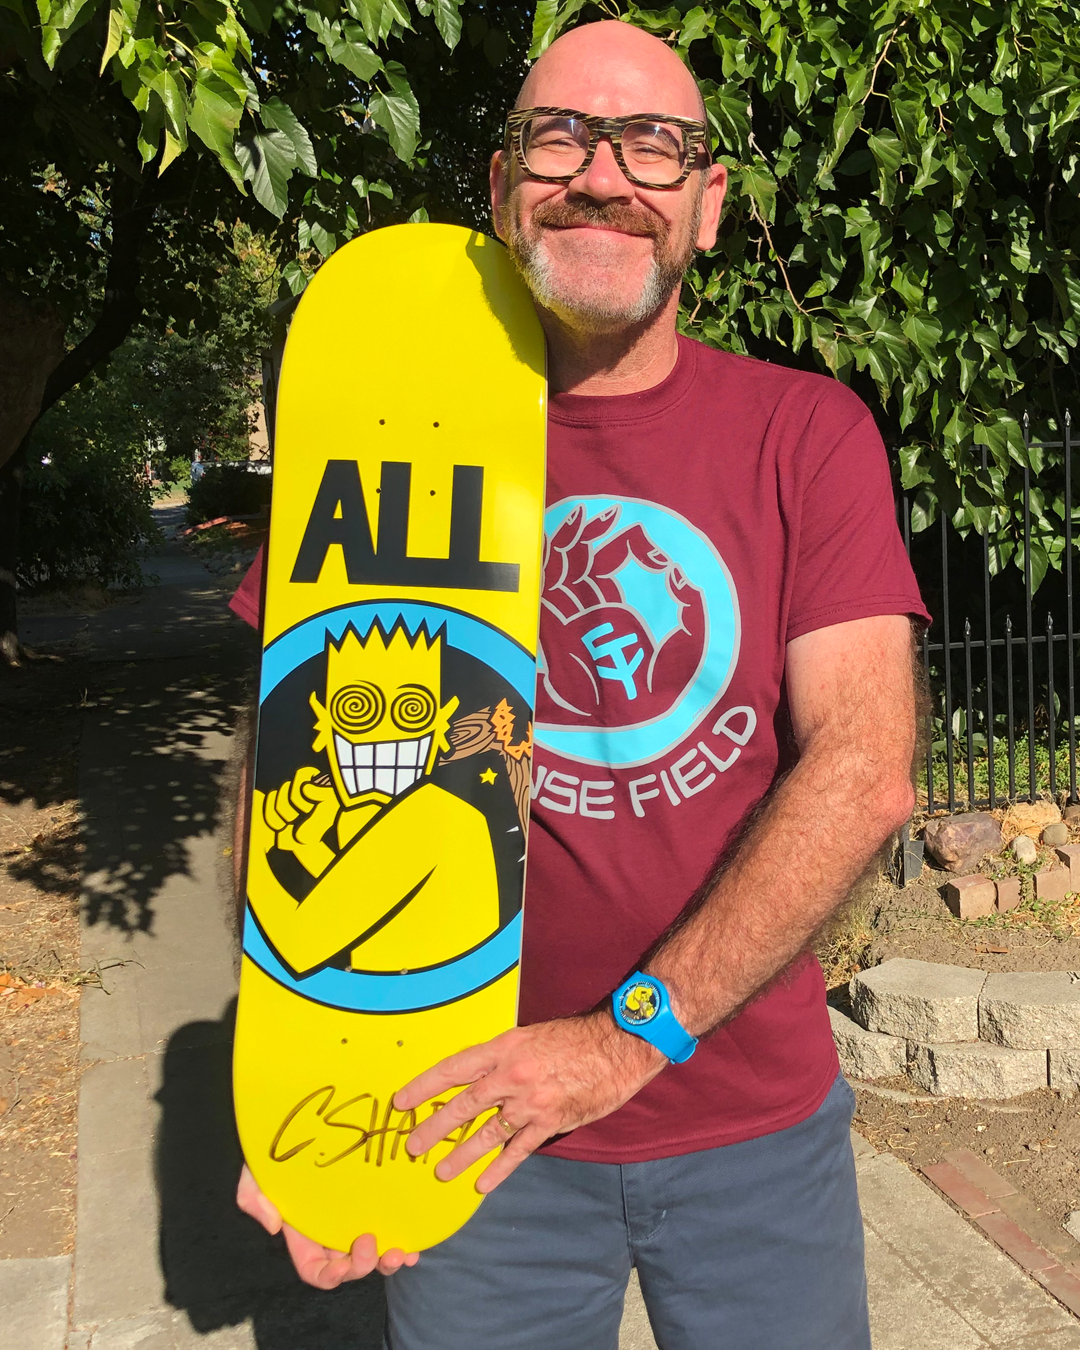 Chris Shary holding autographed ALL skateboard deck